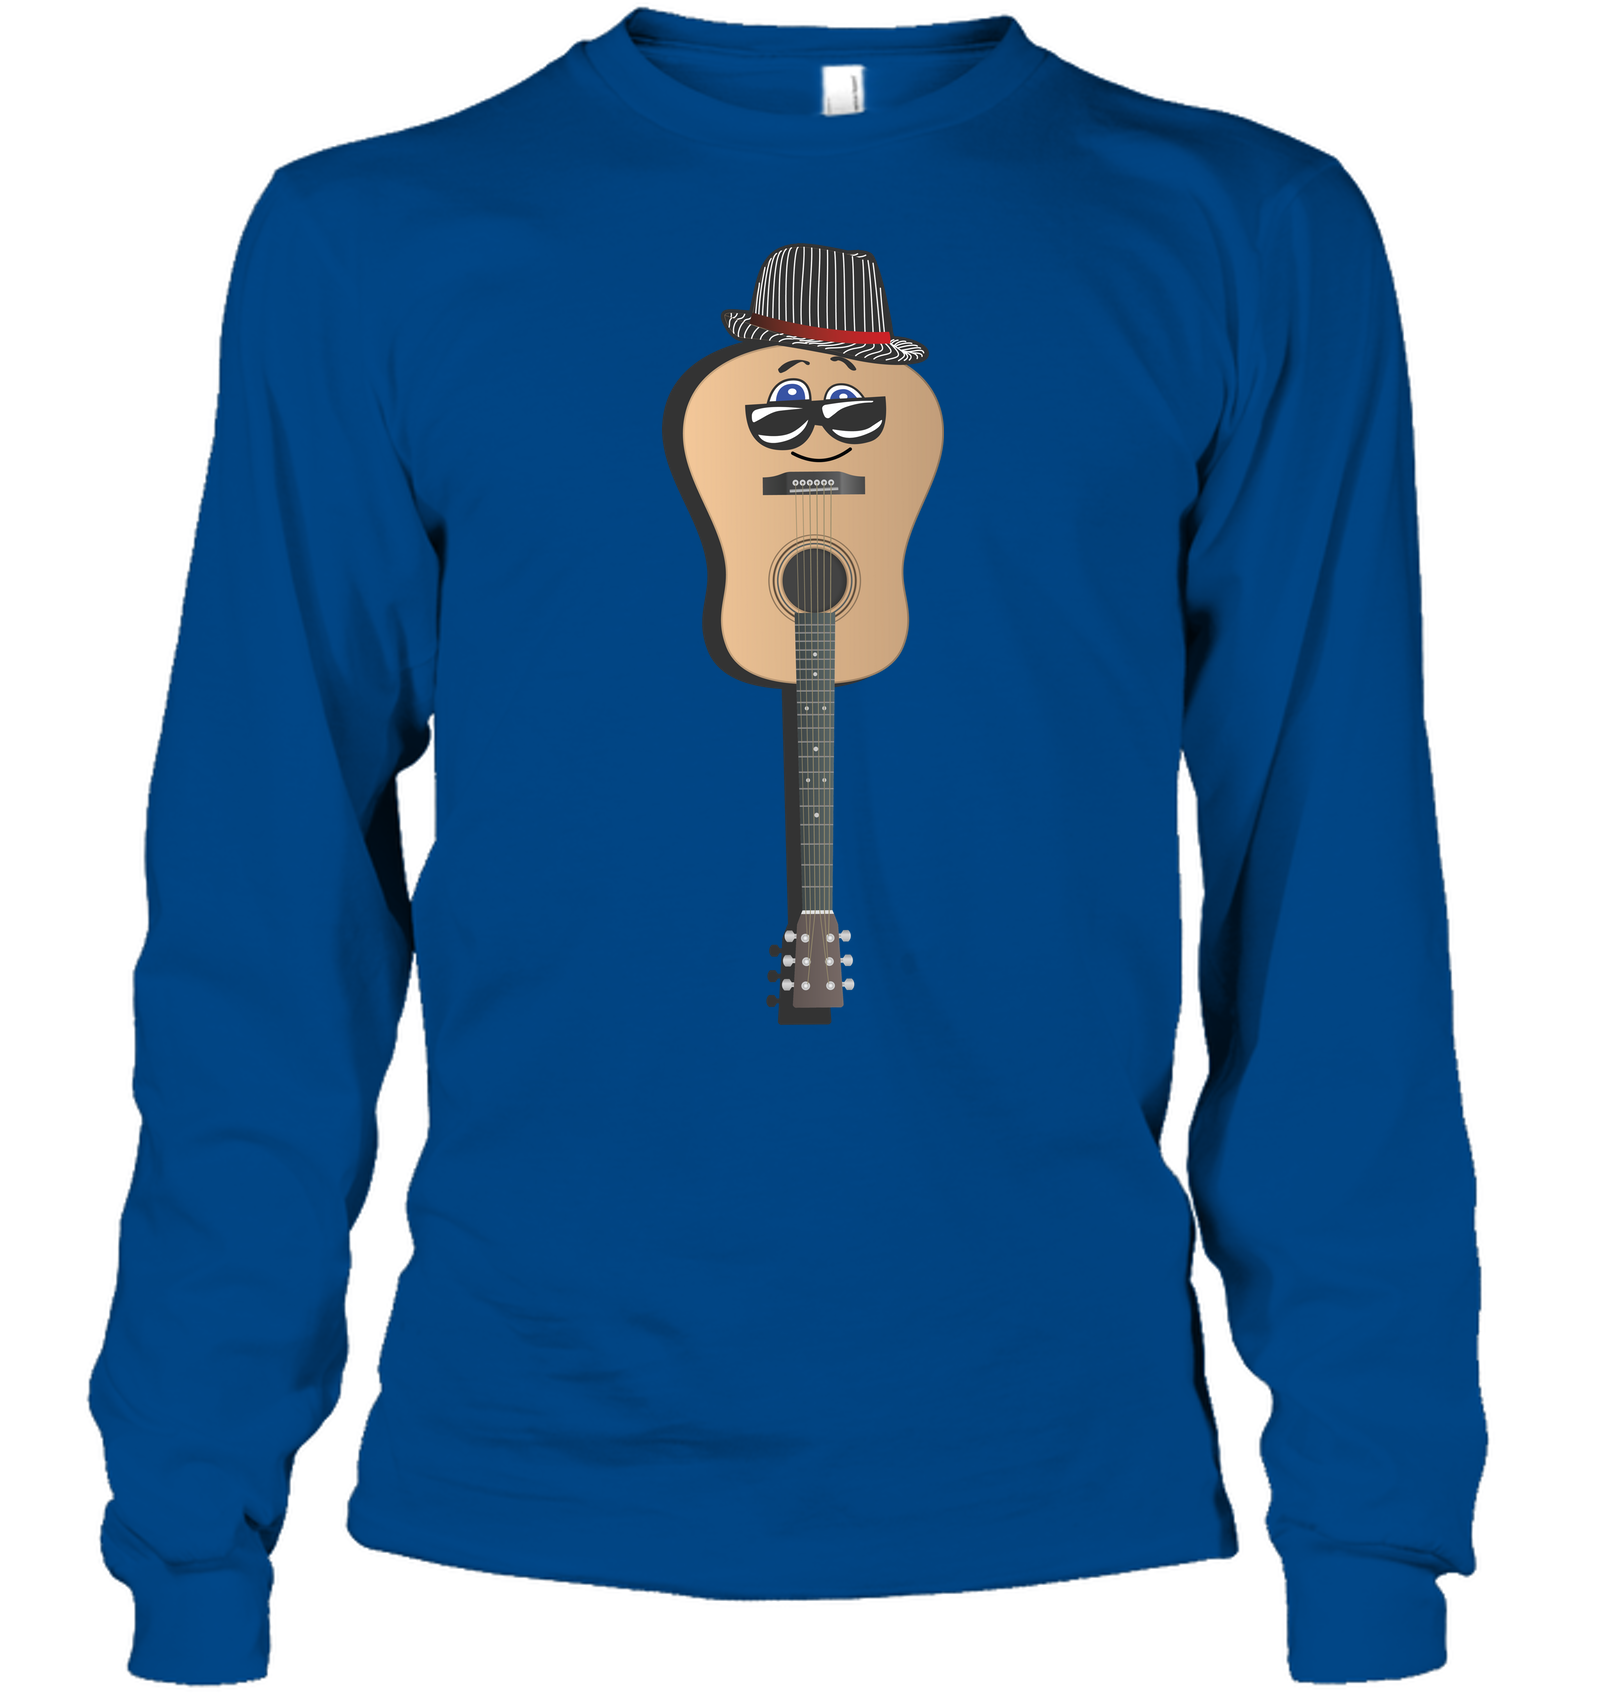 Guitar Man - Gildan Adult Classic Long Sleeve T-Shirt